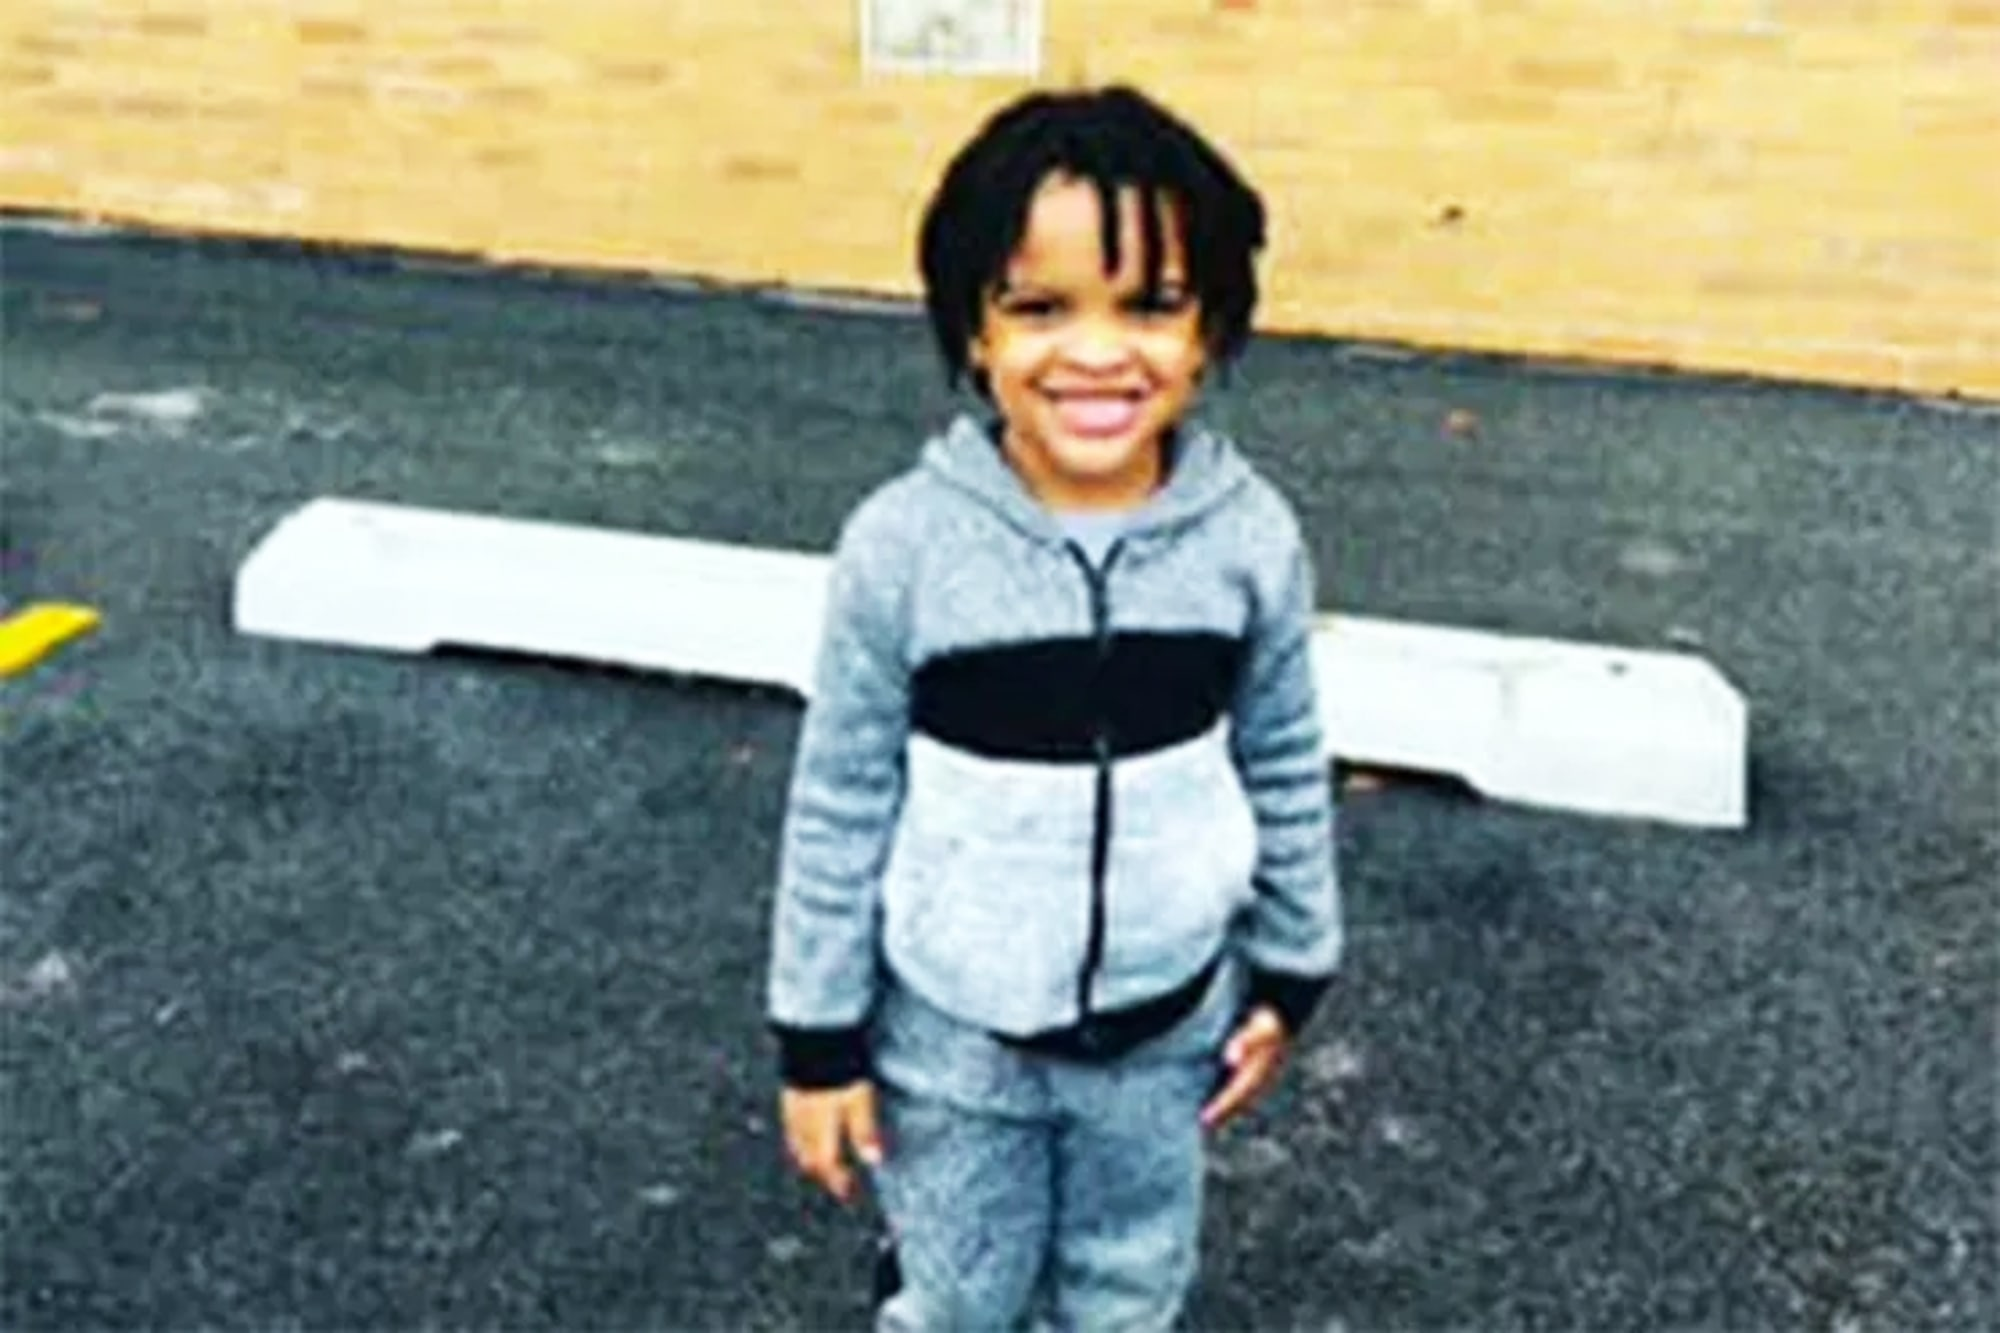 Four-Year-Old Boy Fatally Shot as Gun Violence Plagues Chicago Over Labor Day Weekend